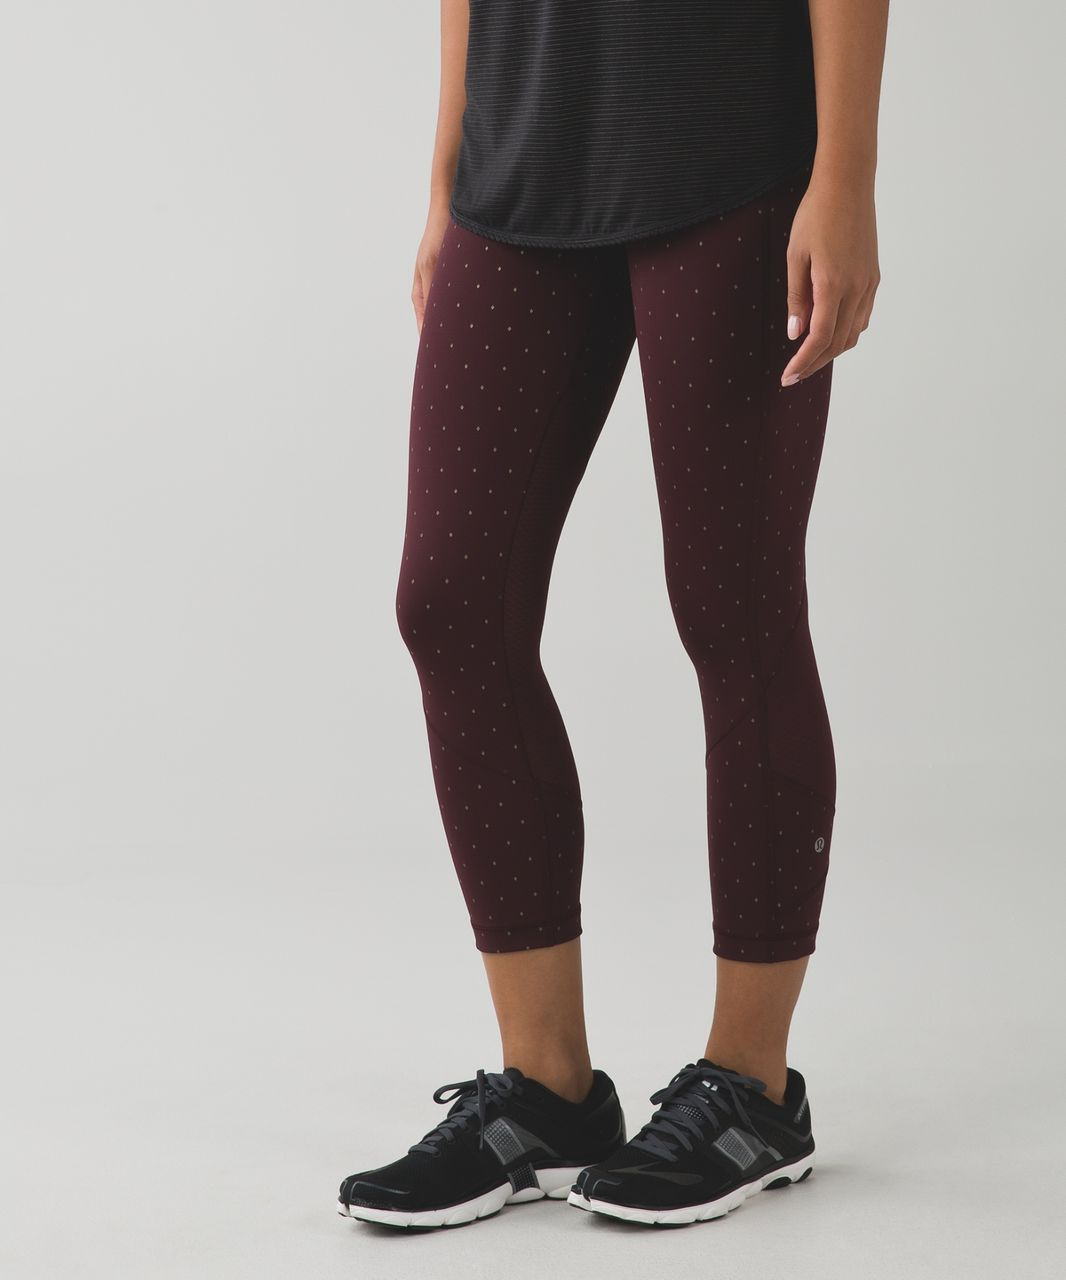 Lululemon Pace Rival Crop - Night Fall Bordeaux Drama Gold / Bordeaux Drama